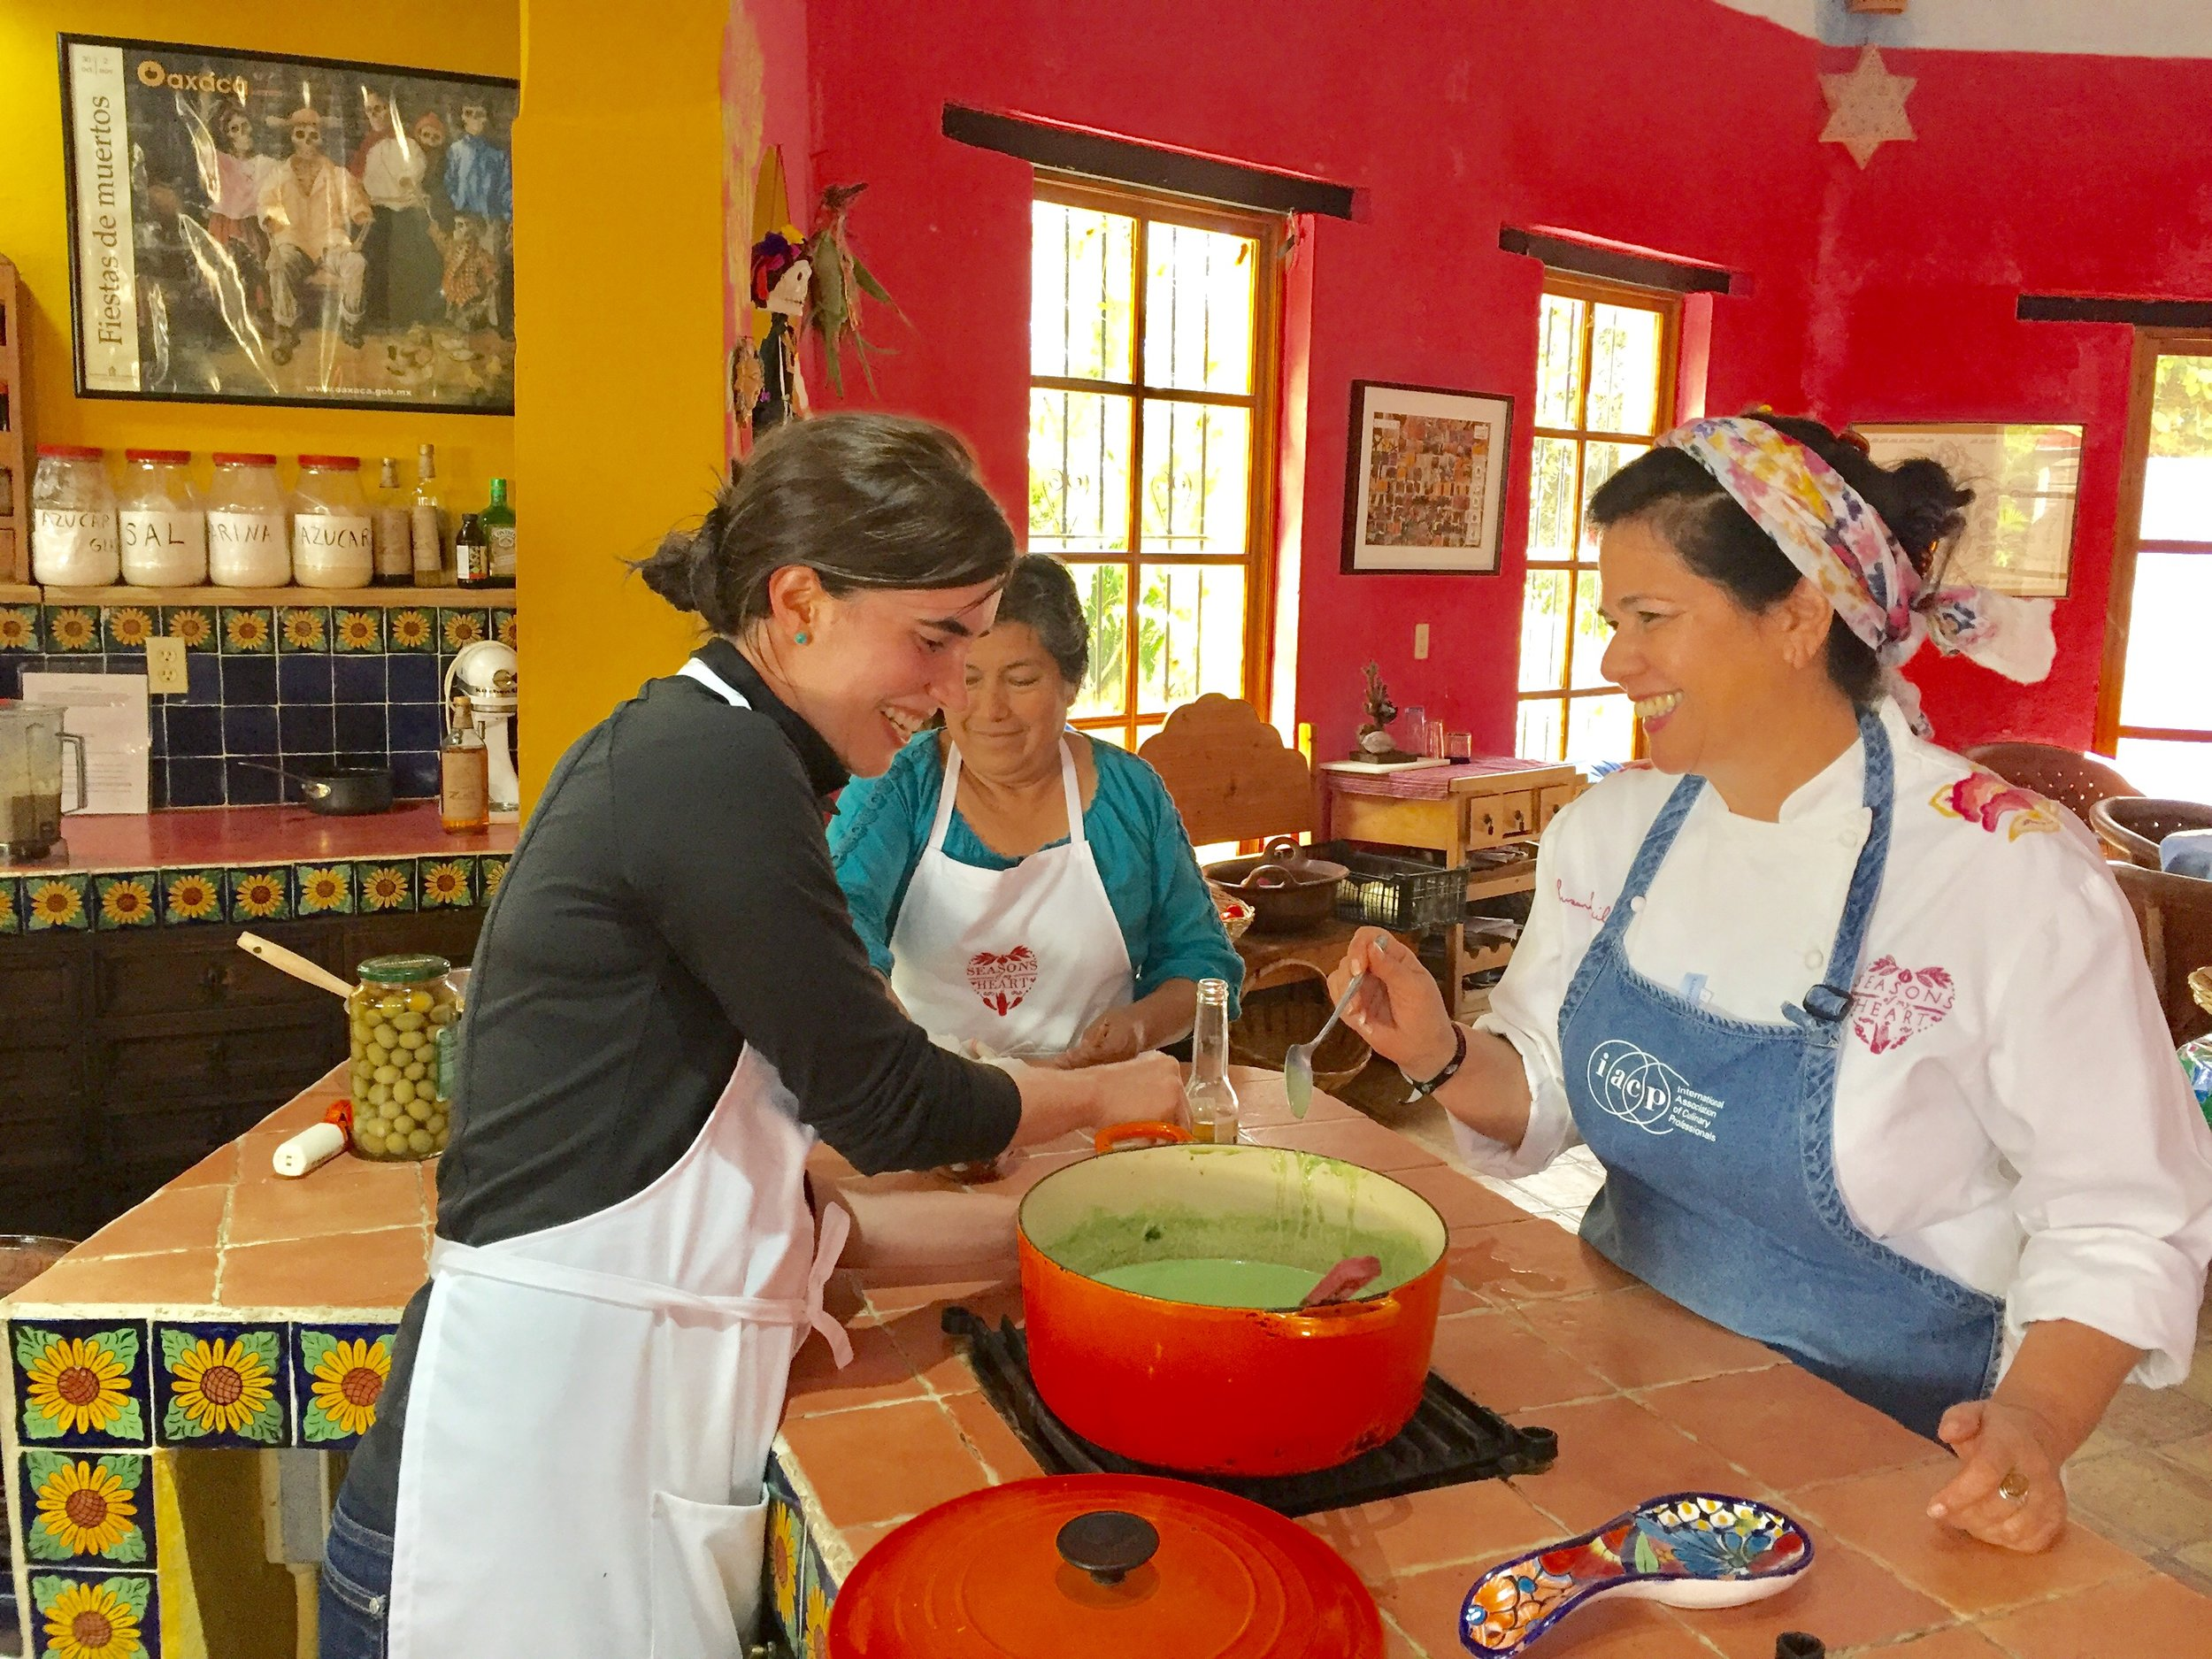 Cooking class in Mexico